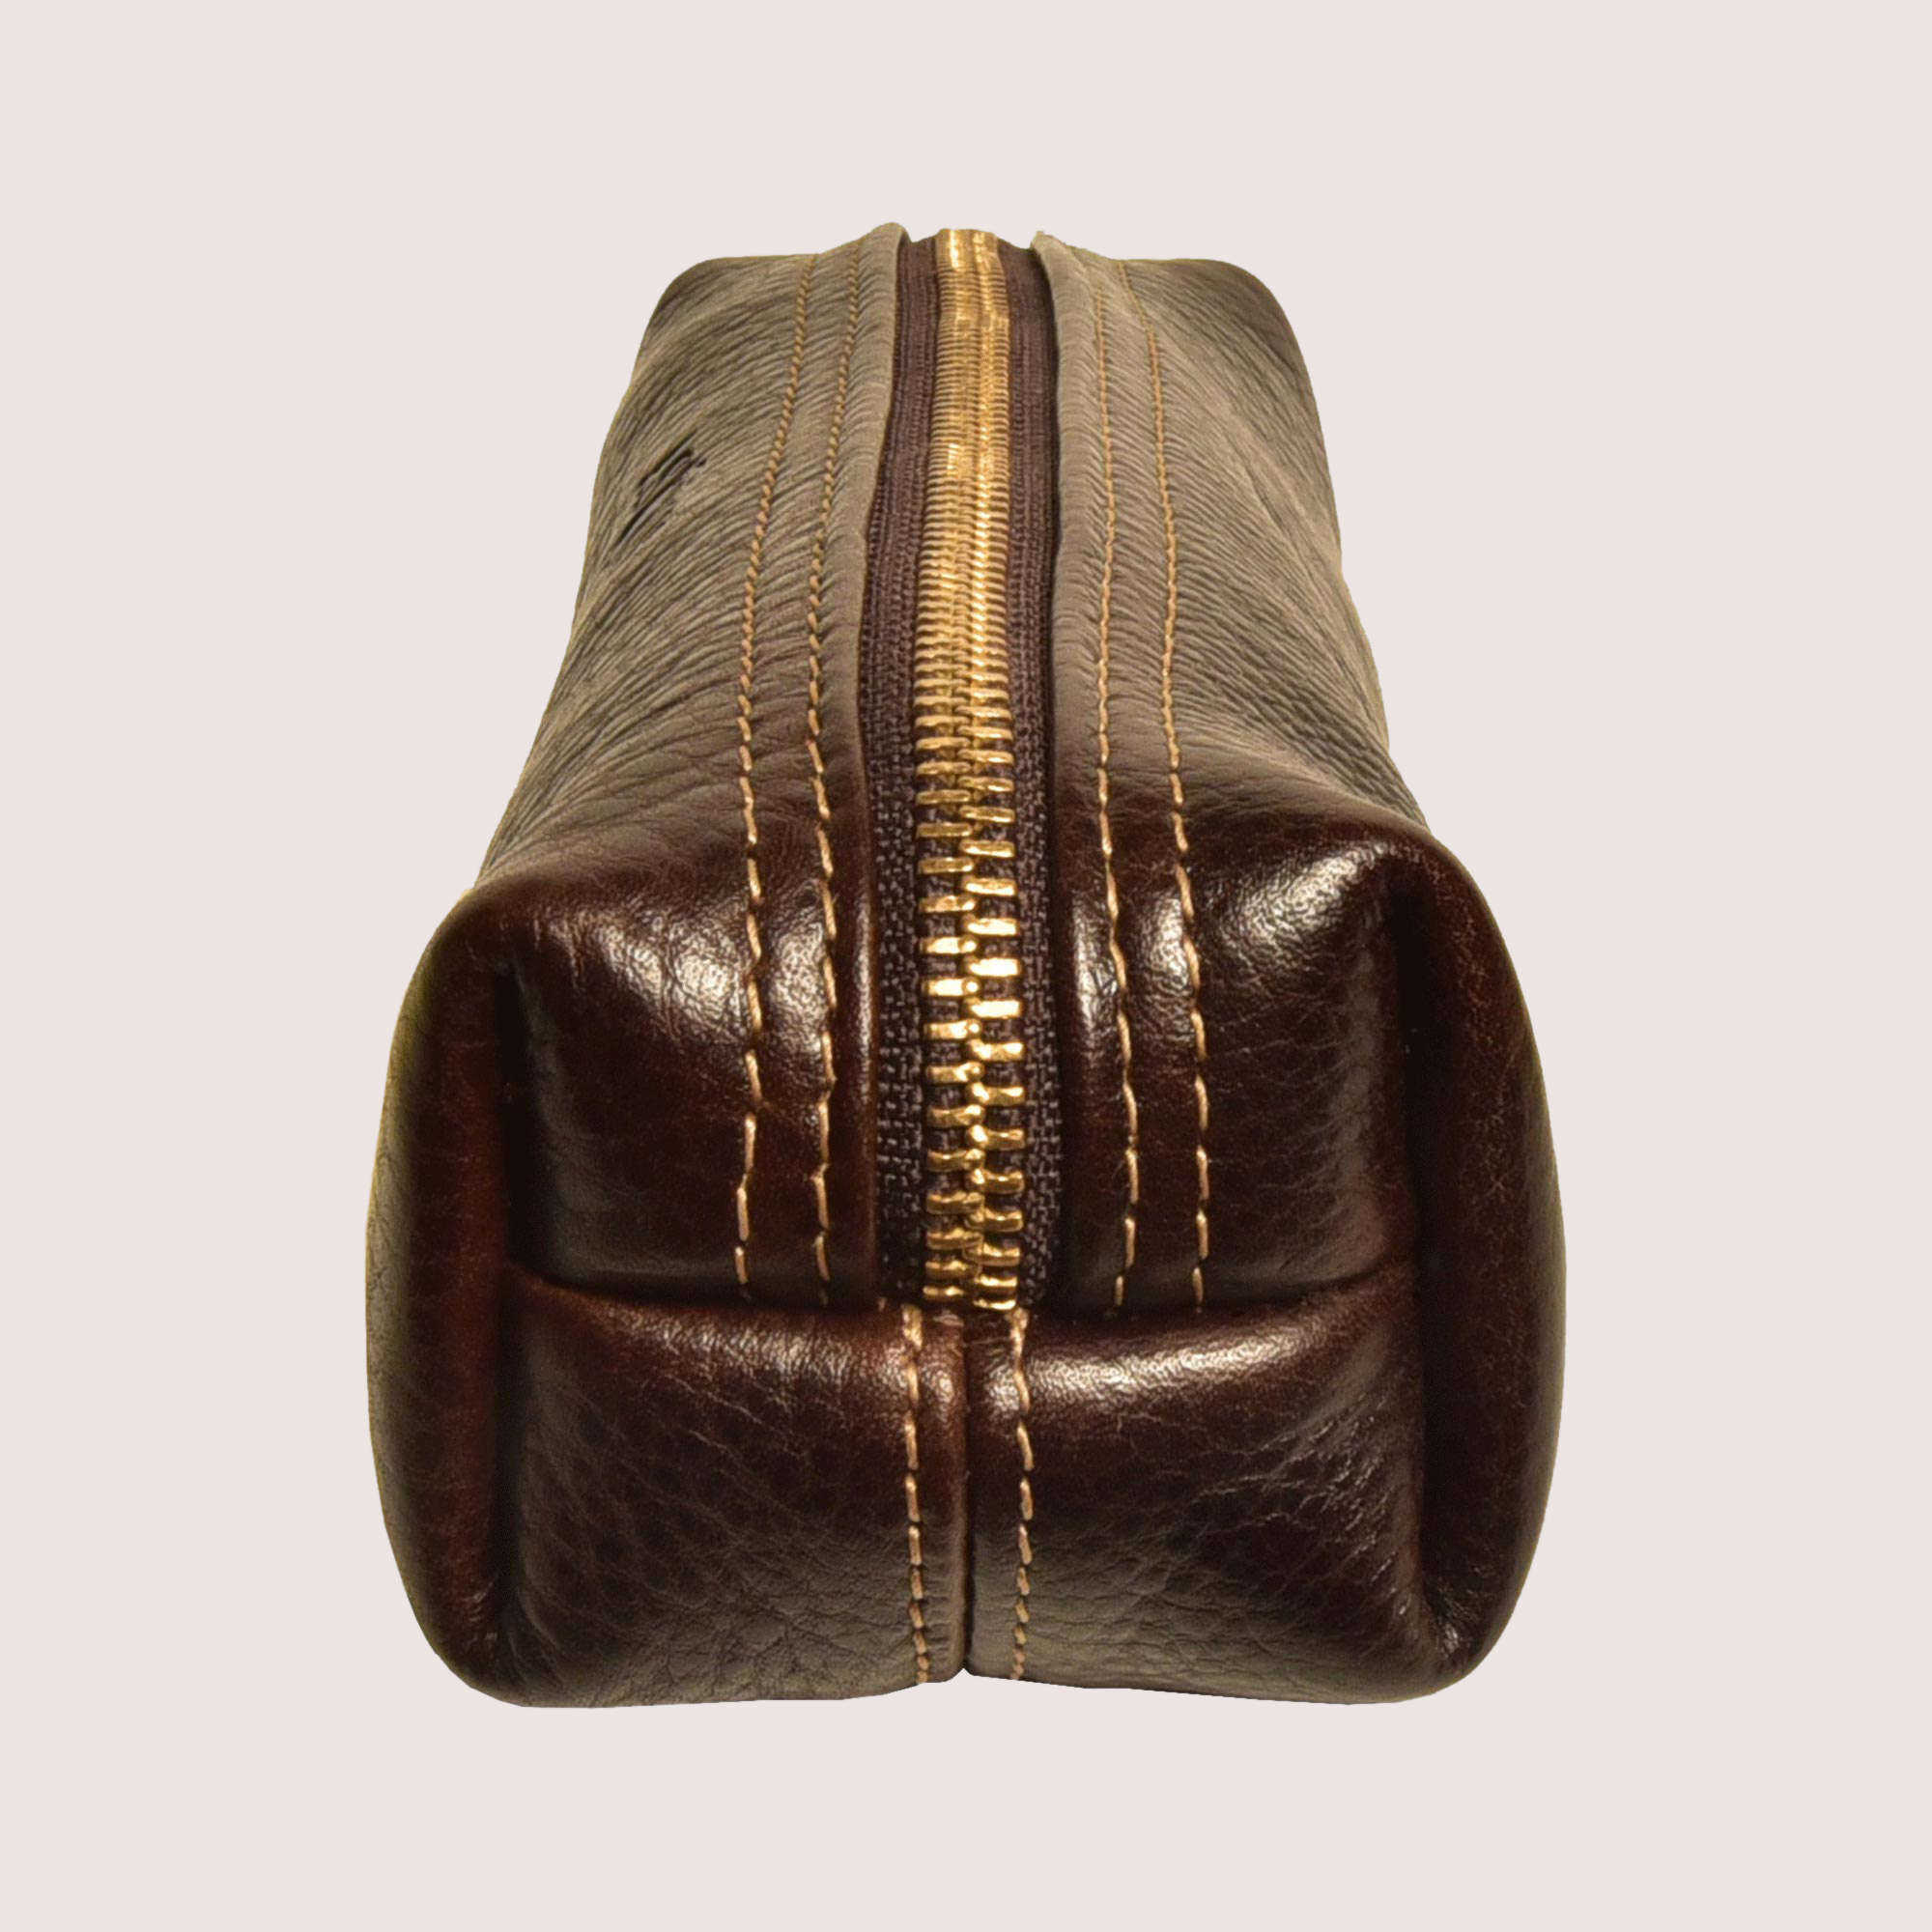 Pen or Multi Purpose Leather Pouch